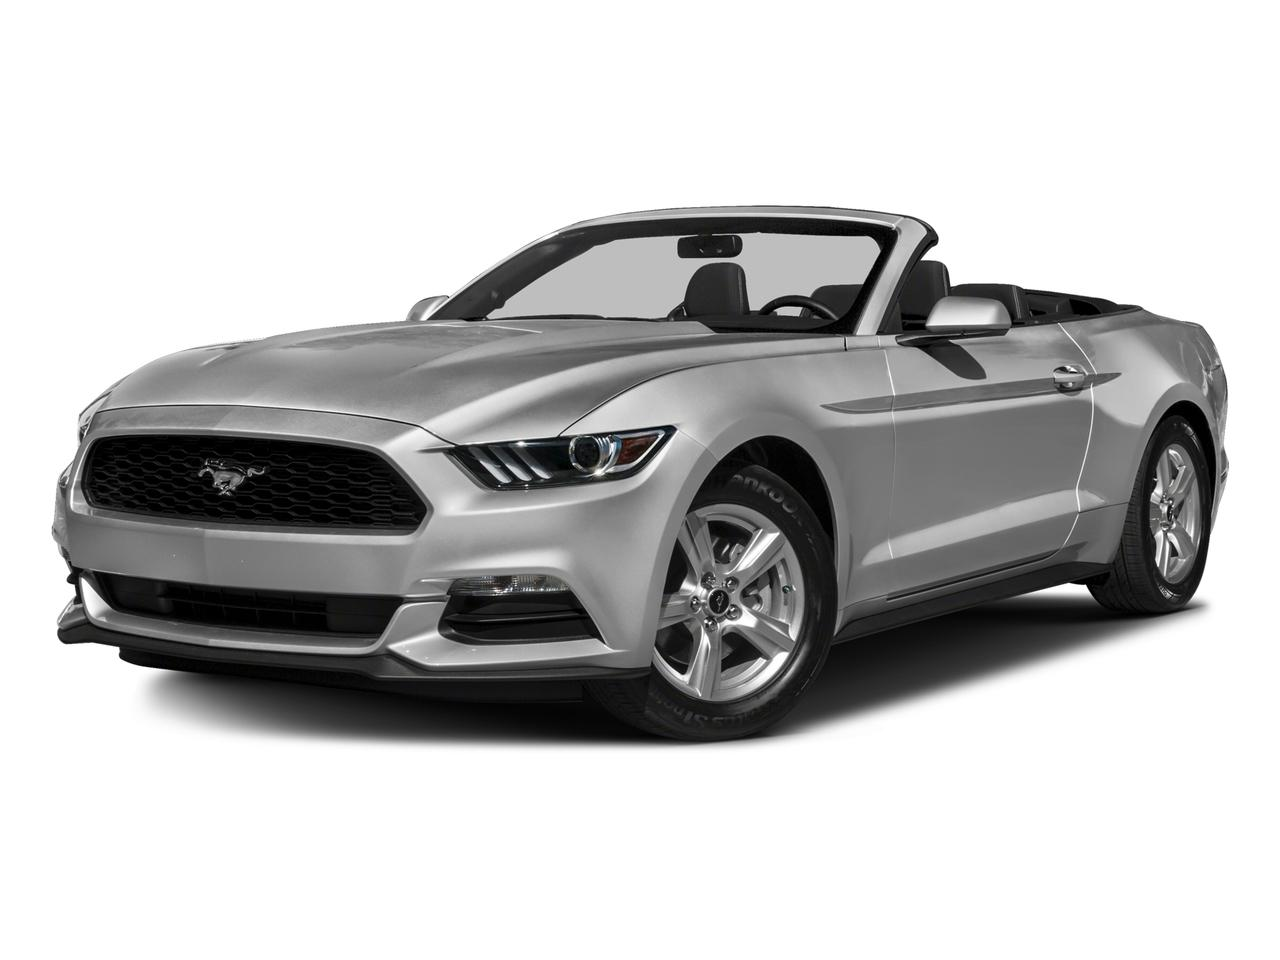 2016 Ford Mustang Vehicle Photo in Killeen, TX 76541